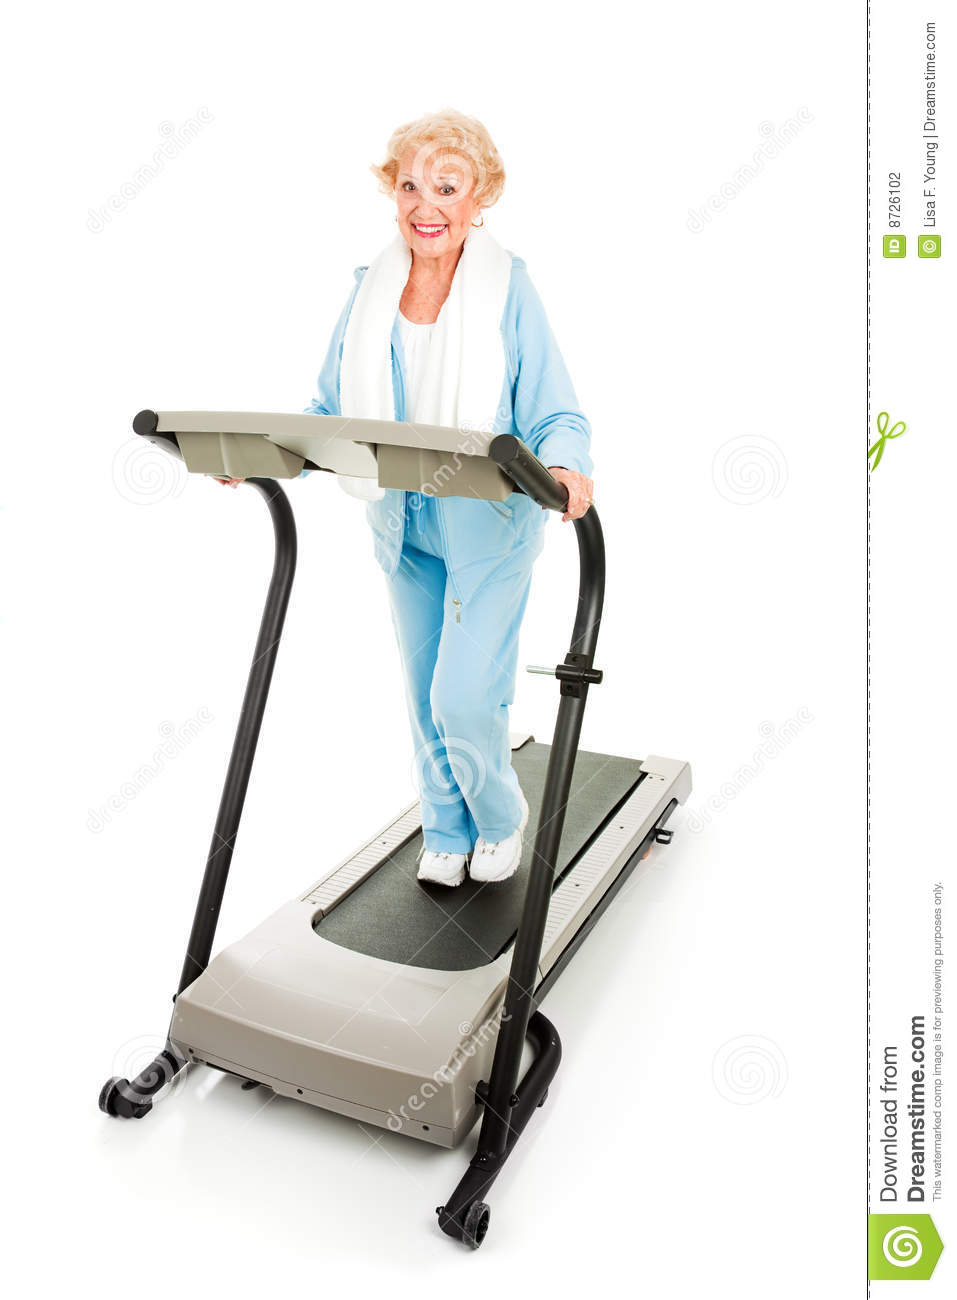 Beautiful Senior Woman Stays Fit By Exercising On A Treadmill